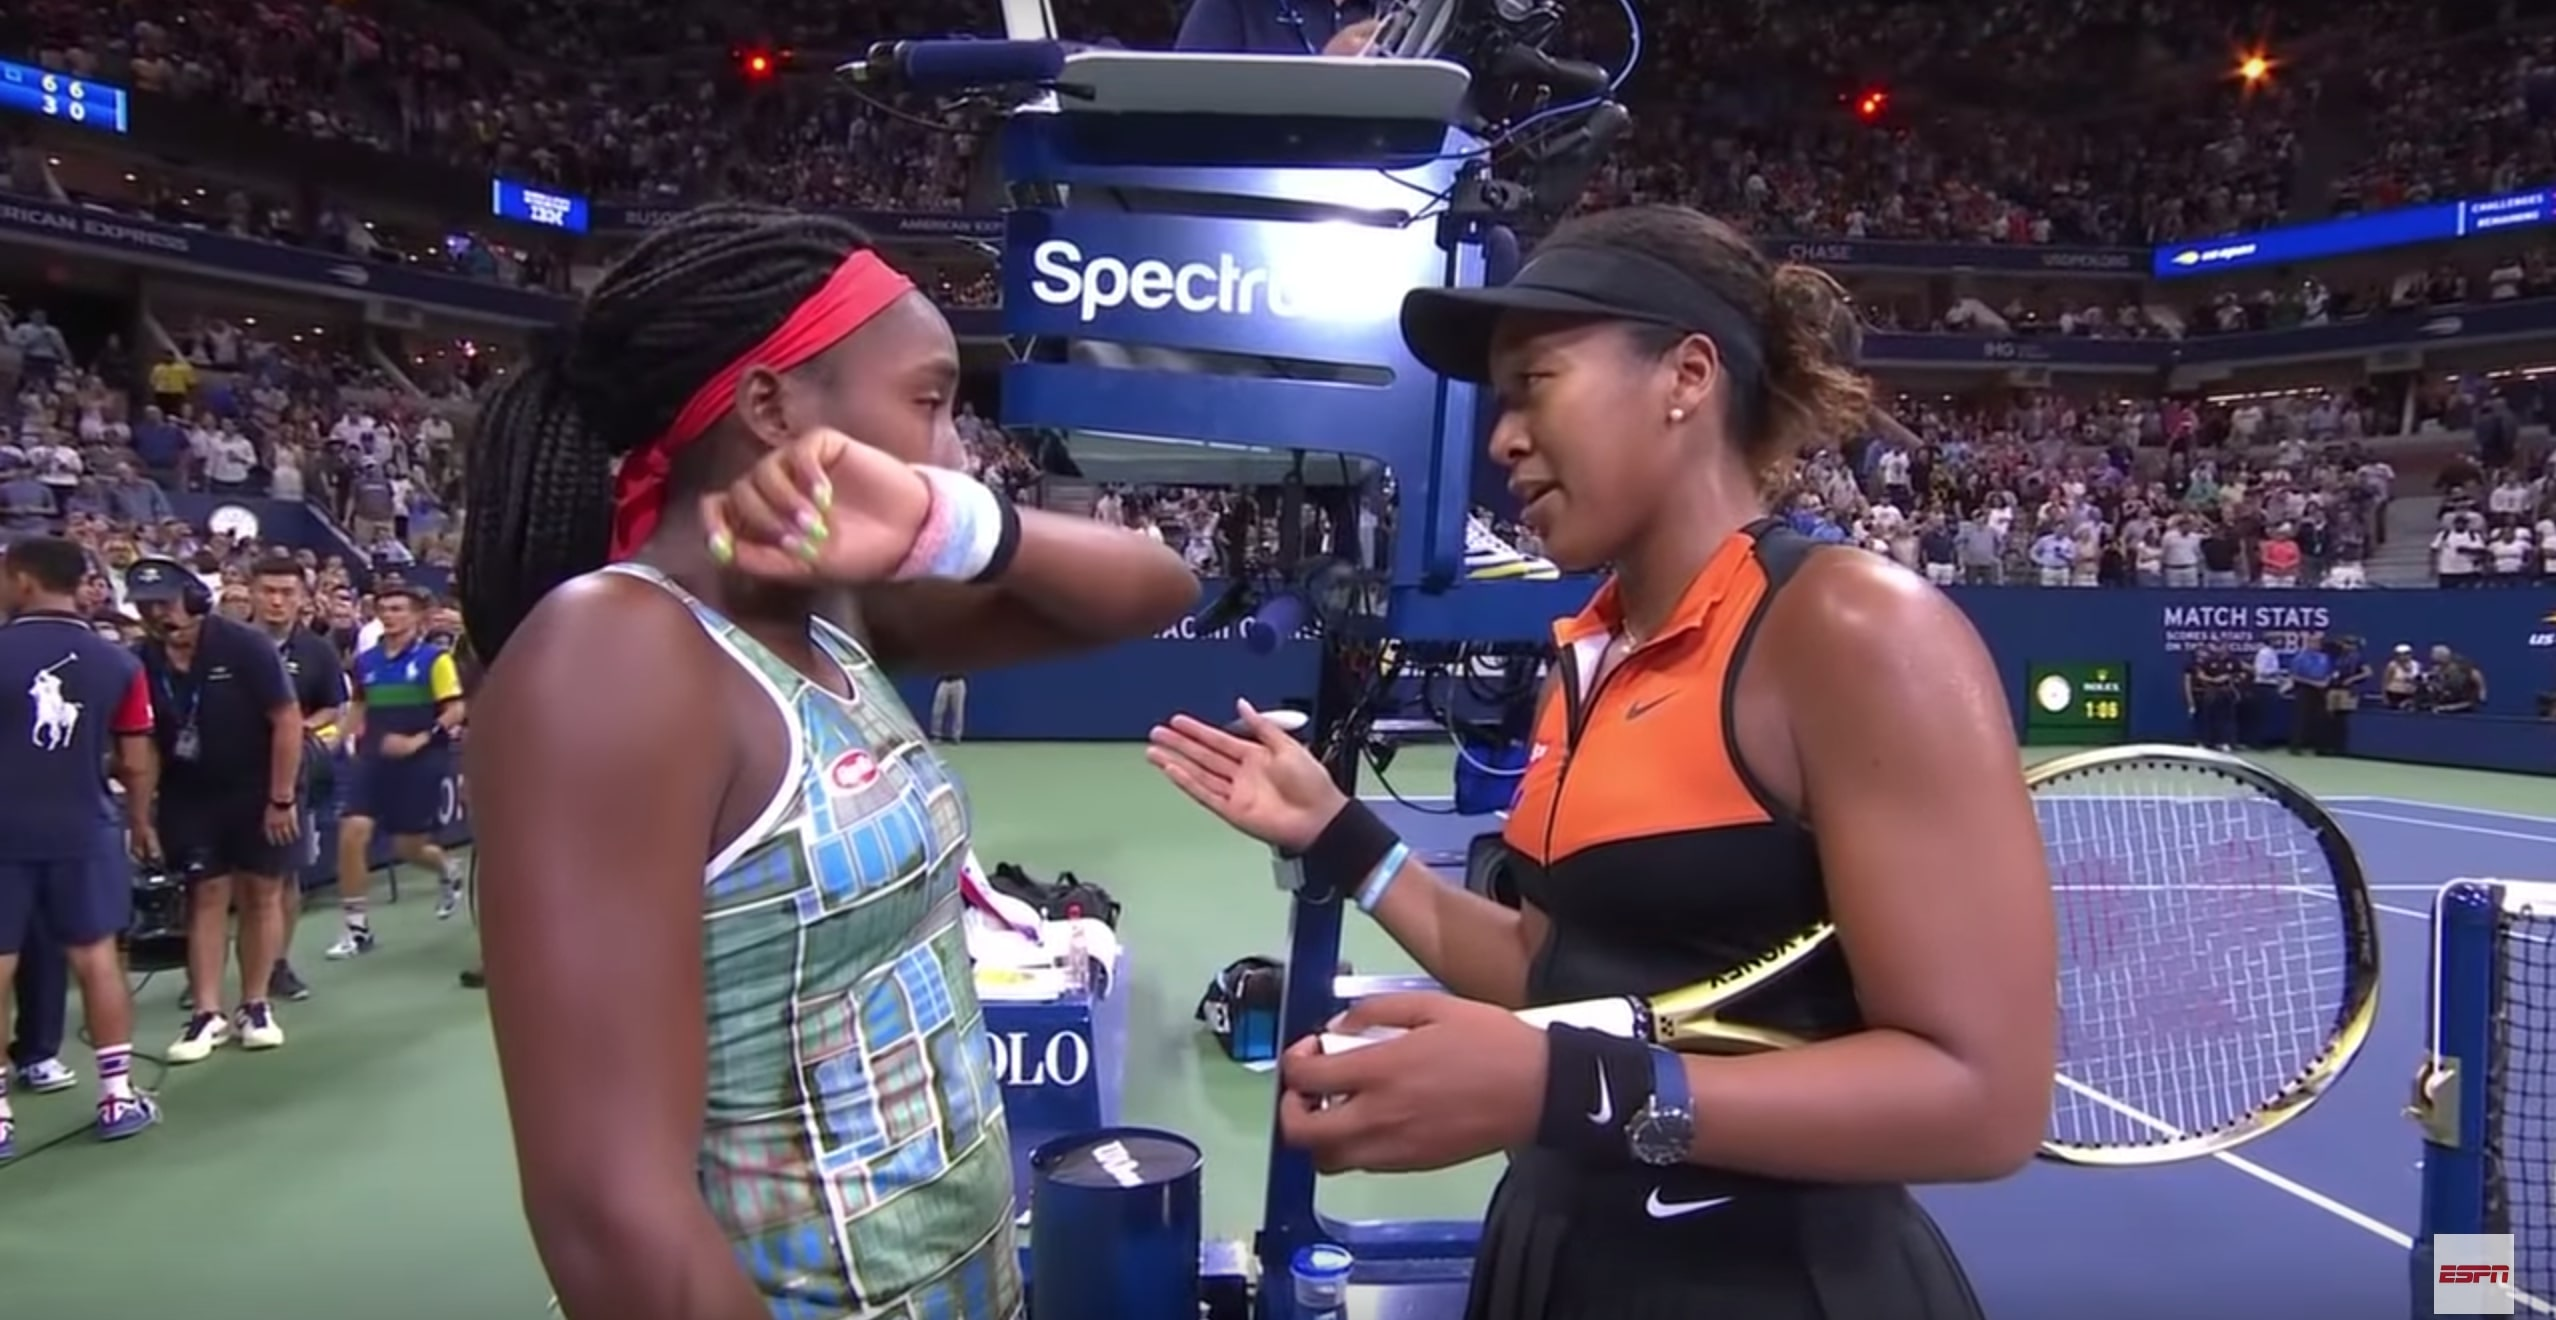 WATCH: Tennis Star Naomi Osaka Invites 15-Year-Old Phenom Coco Gauff to Join Interview After Emotional U.S. Open Match